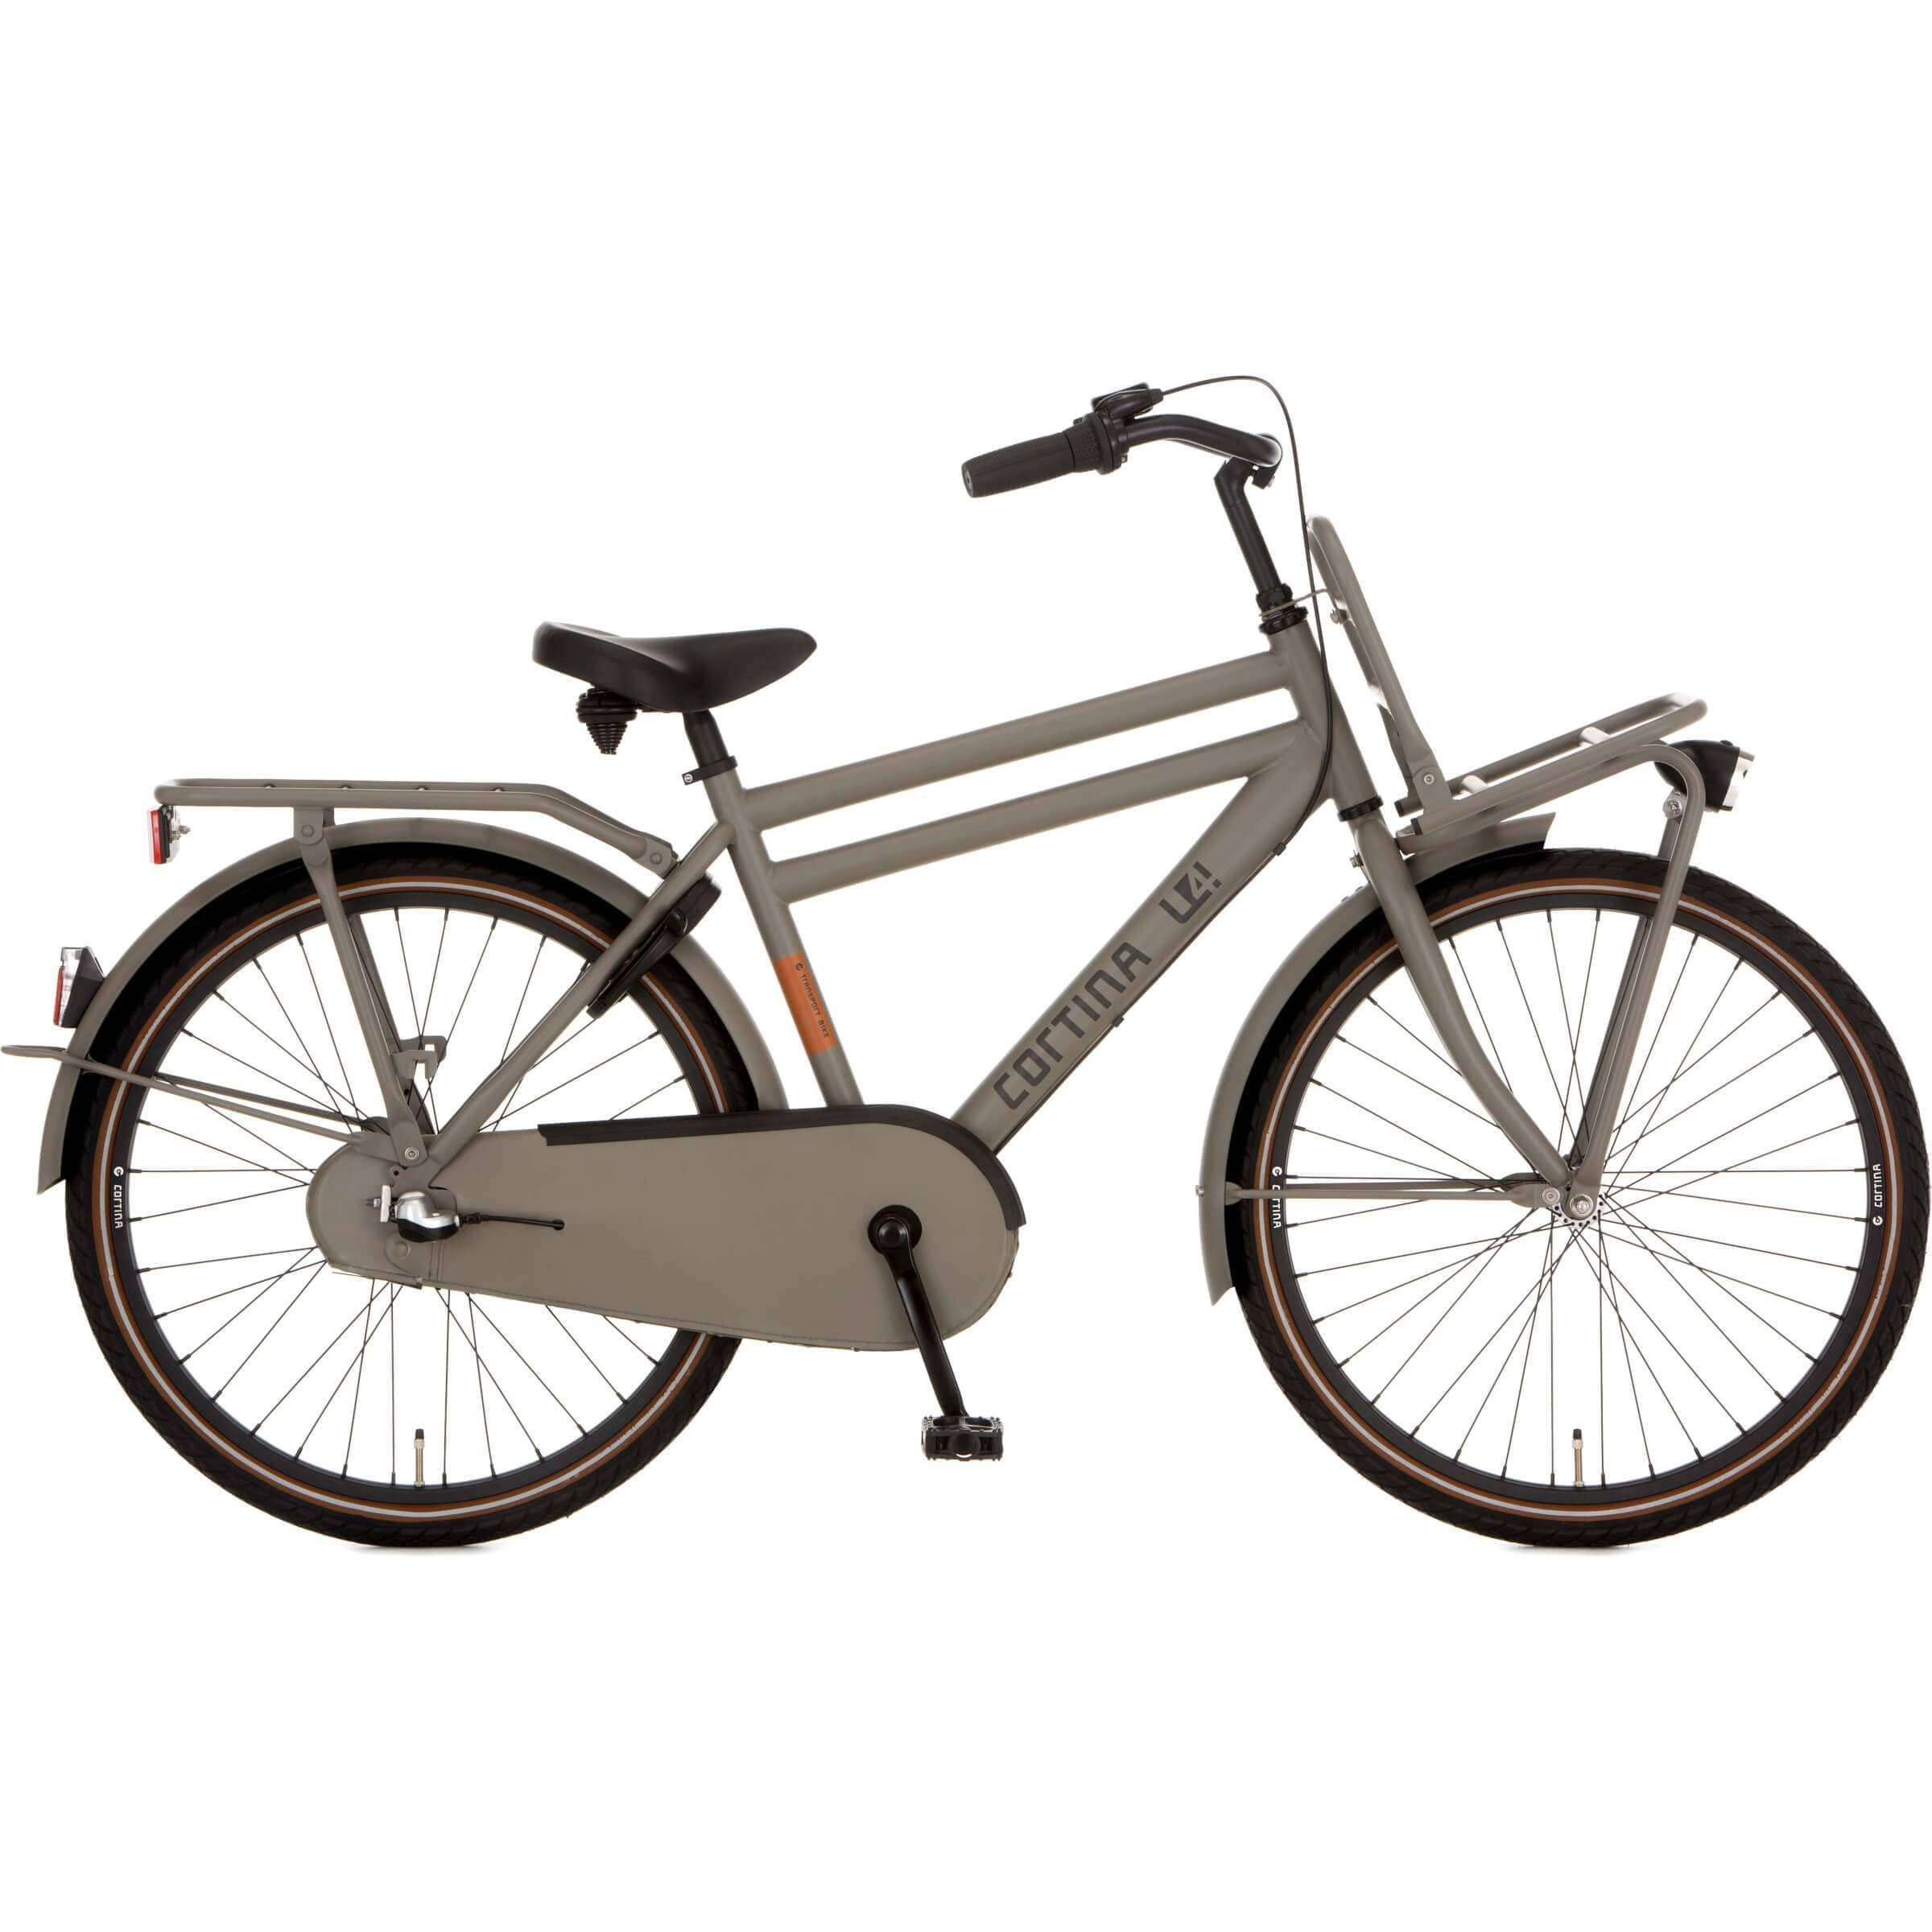 Cortina U4 Transport Solid Mini RN3 26 inch 2020 Jongens - Fietsenconcurrent.nl